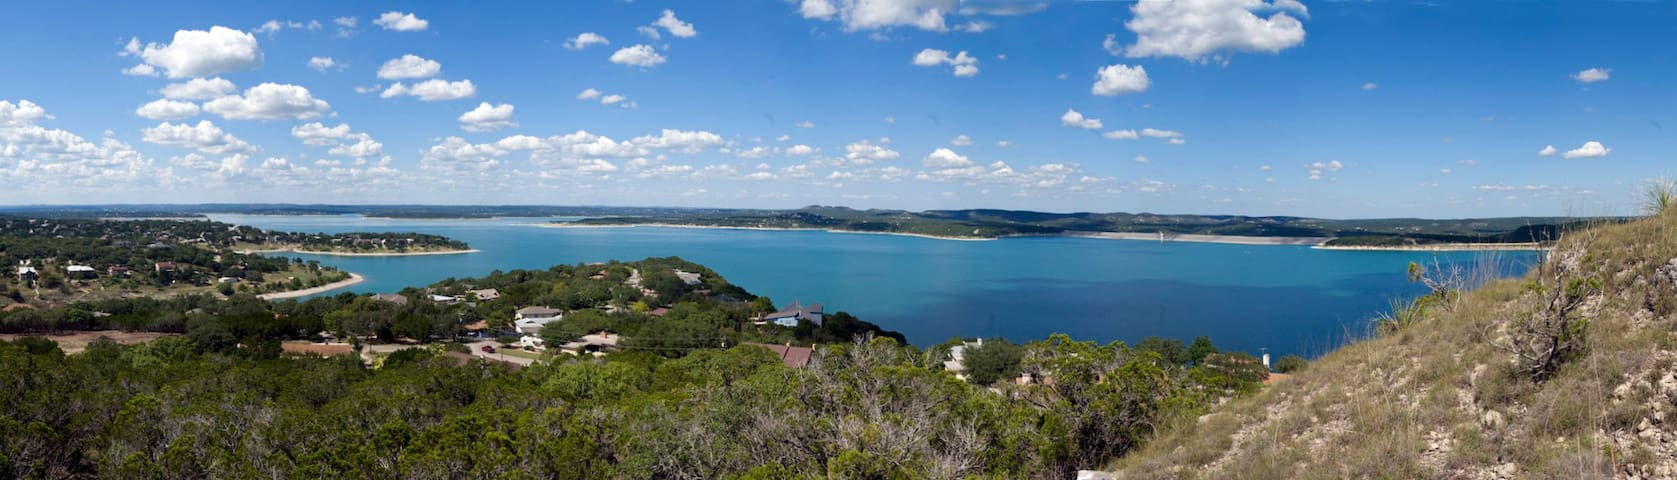 Birdy's Place at Canyon Lake - Pool, Tennis, Golf!